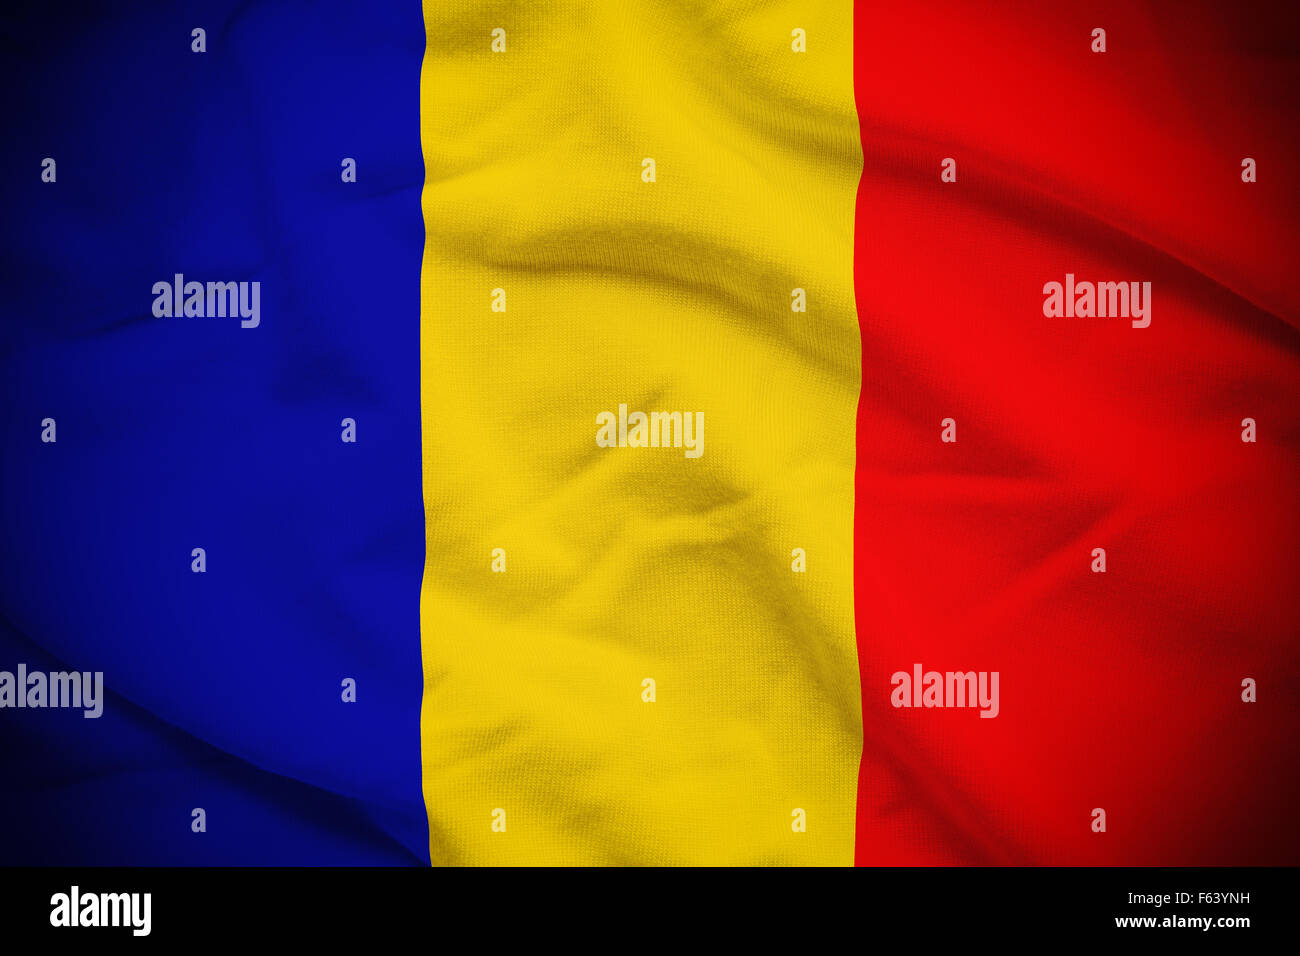 Wavy and rippled national flag of Chad background. Stock Photo